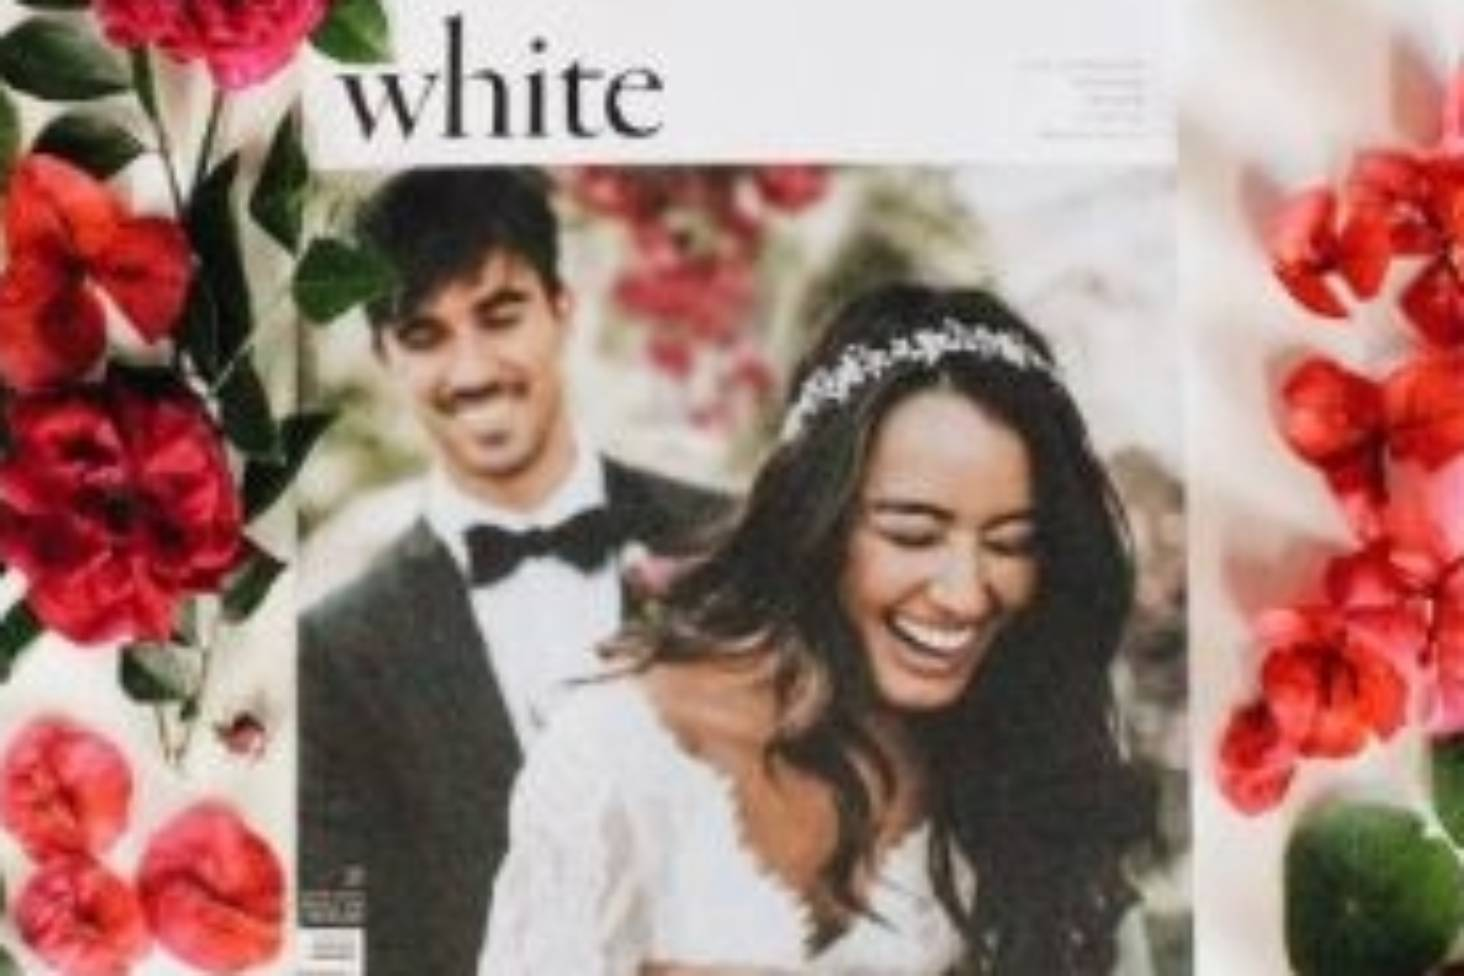 Top Australian bridal magazine that refused to feature gay couples goes out  of business